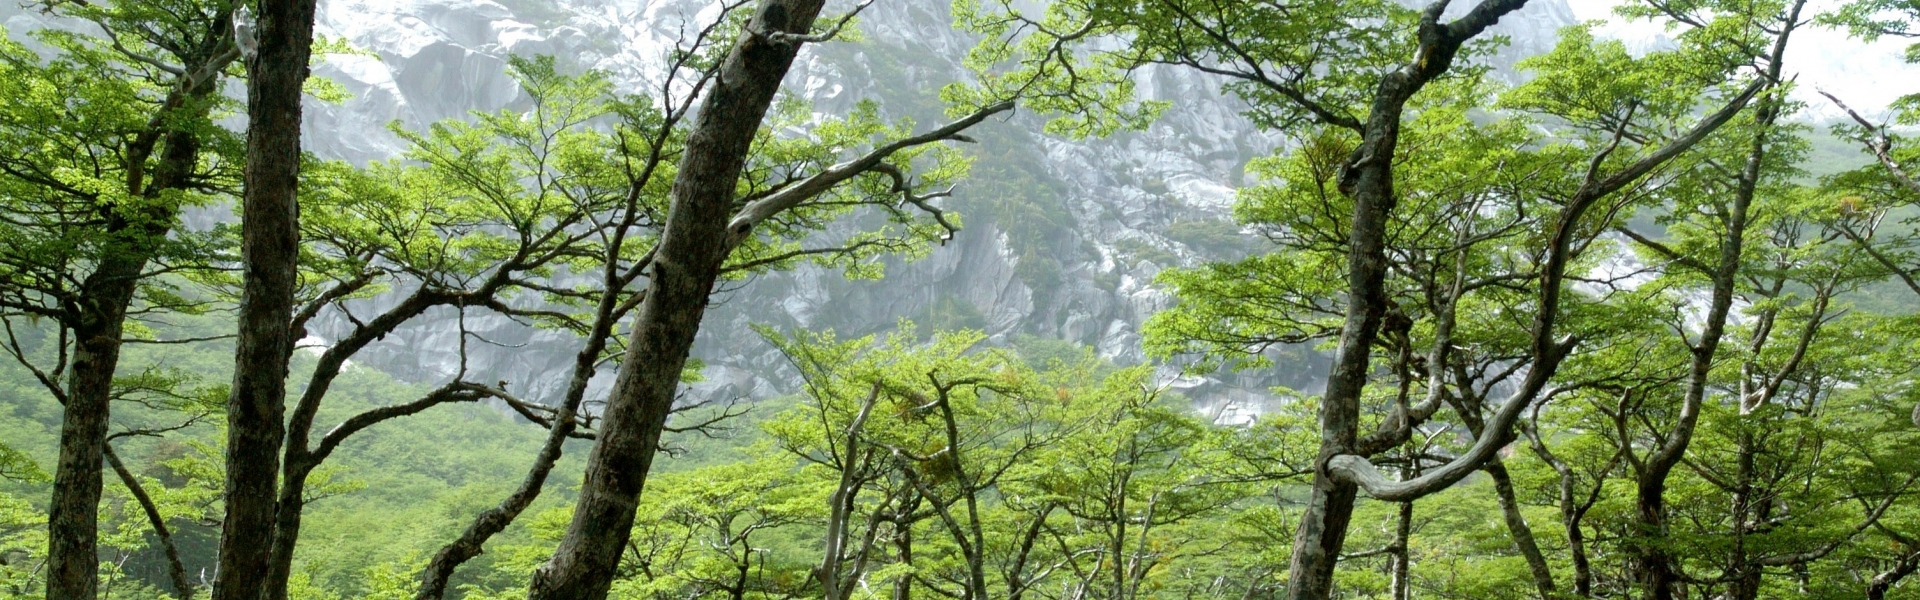 Lush native forest trees in Chile